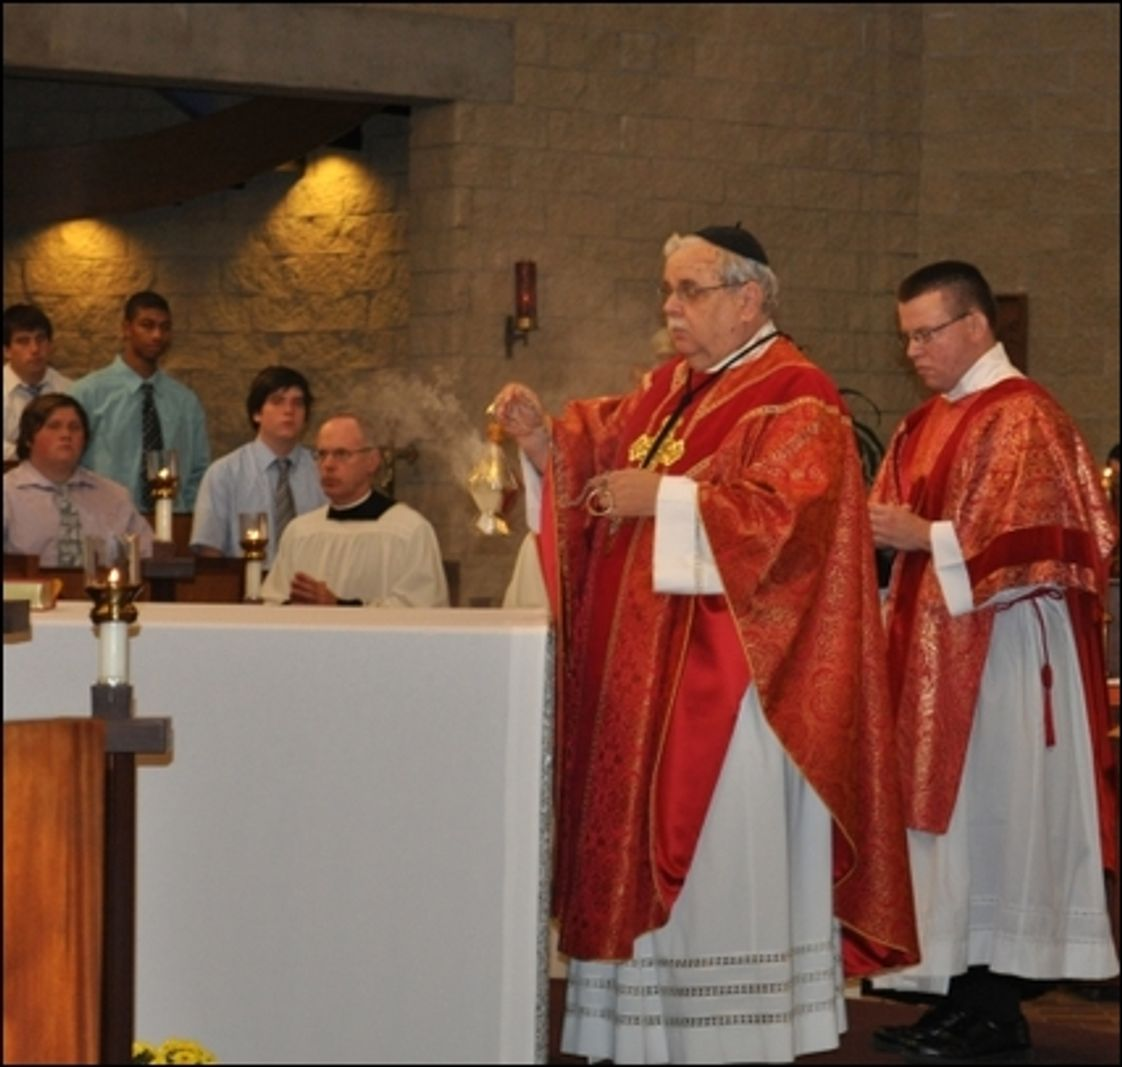 Benedictine High School Photo #1 - Opening School Mass